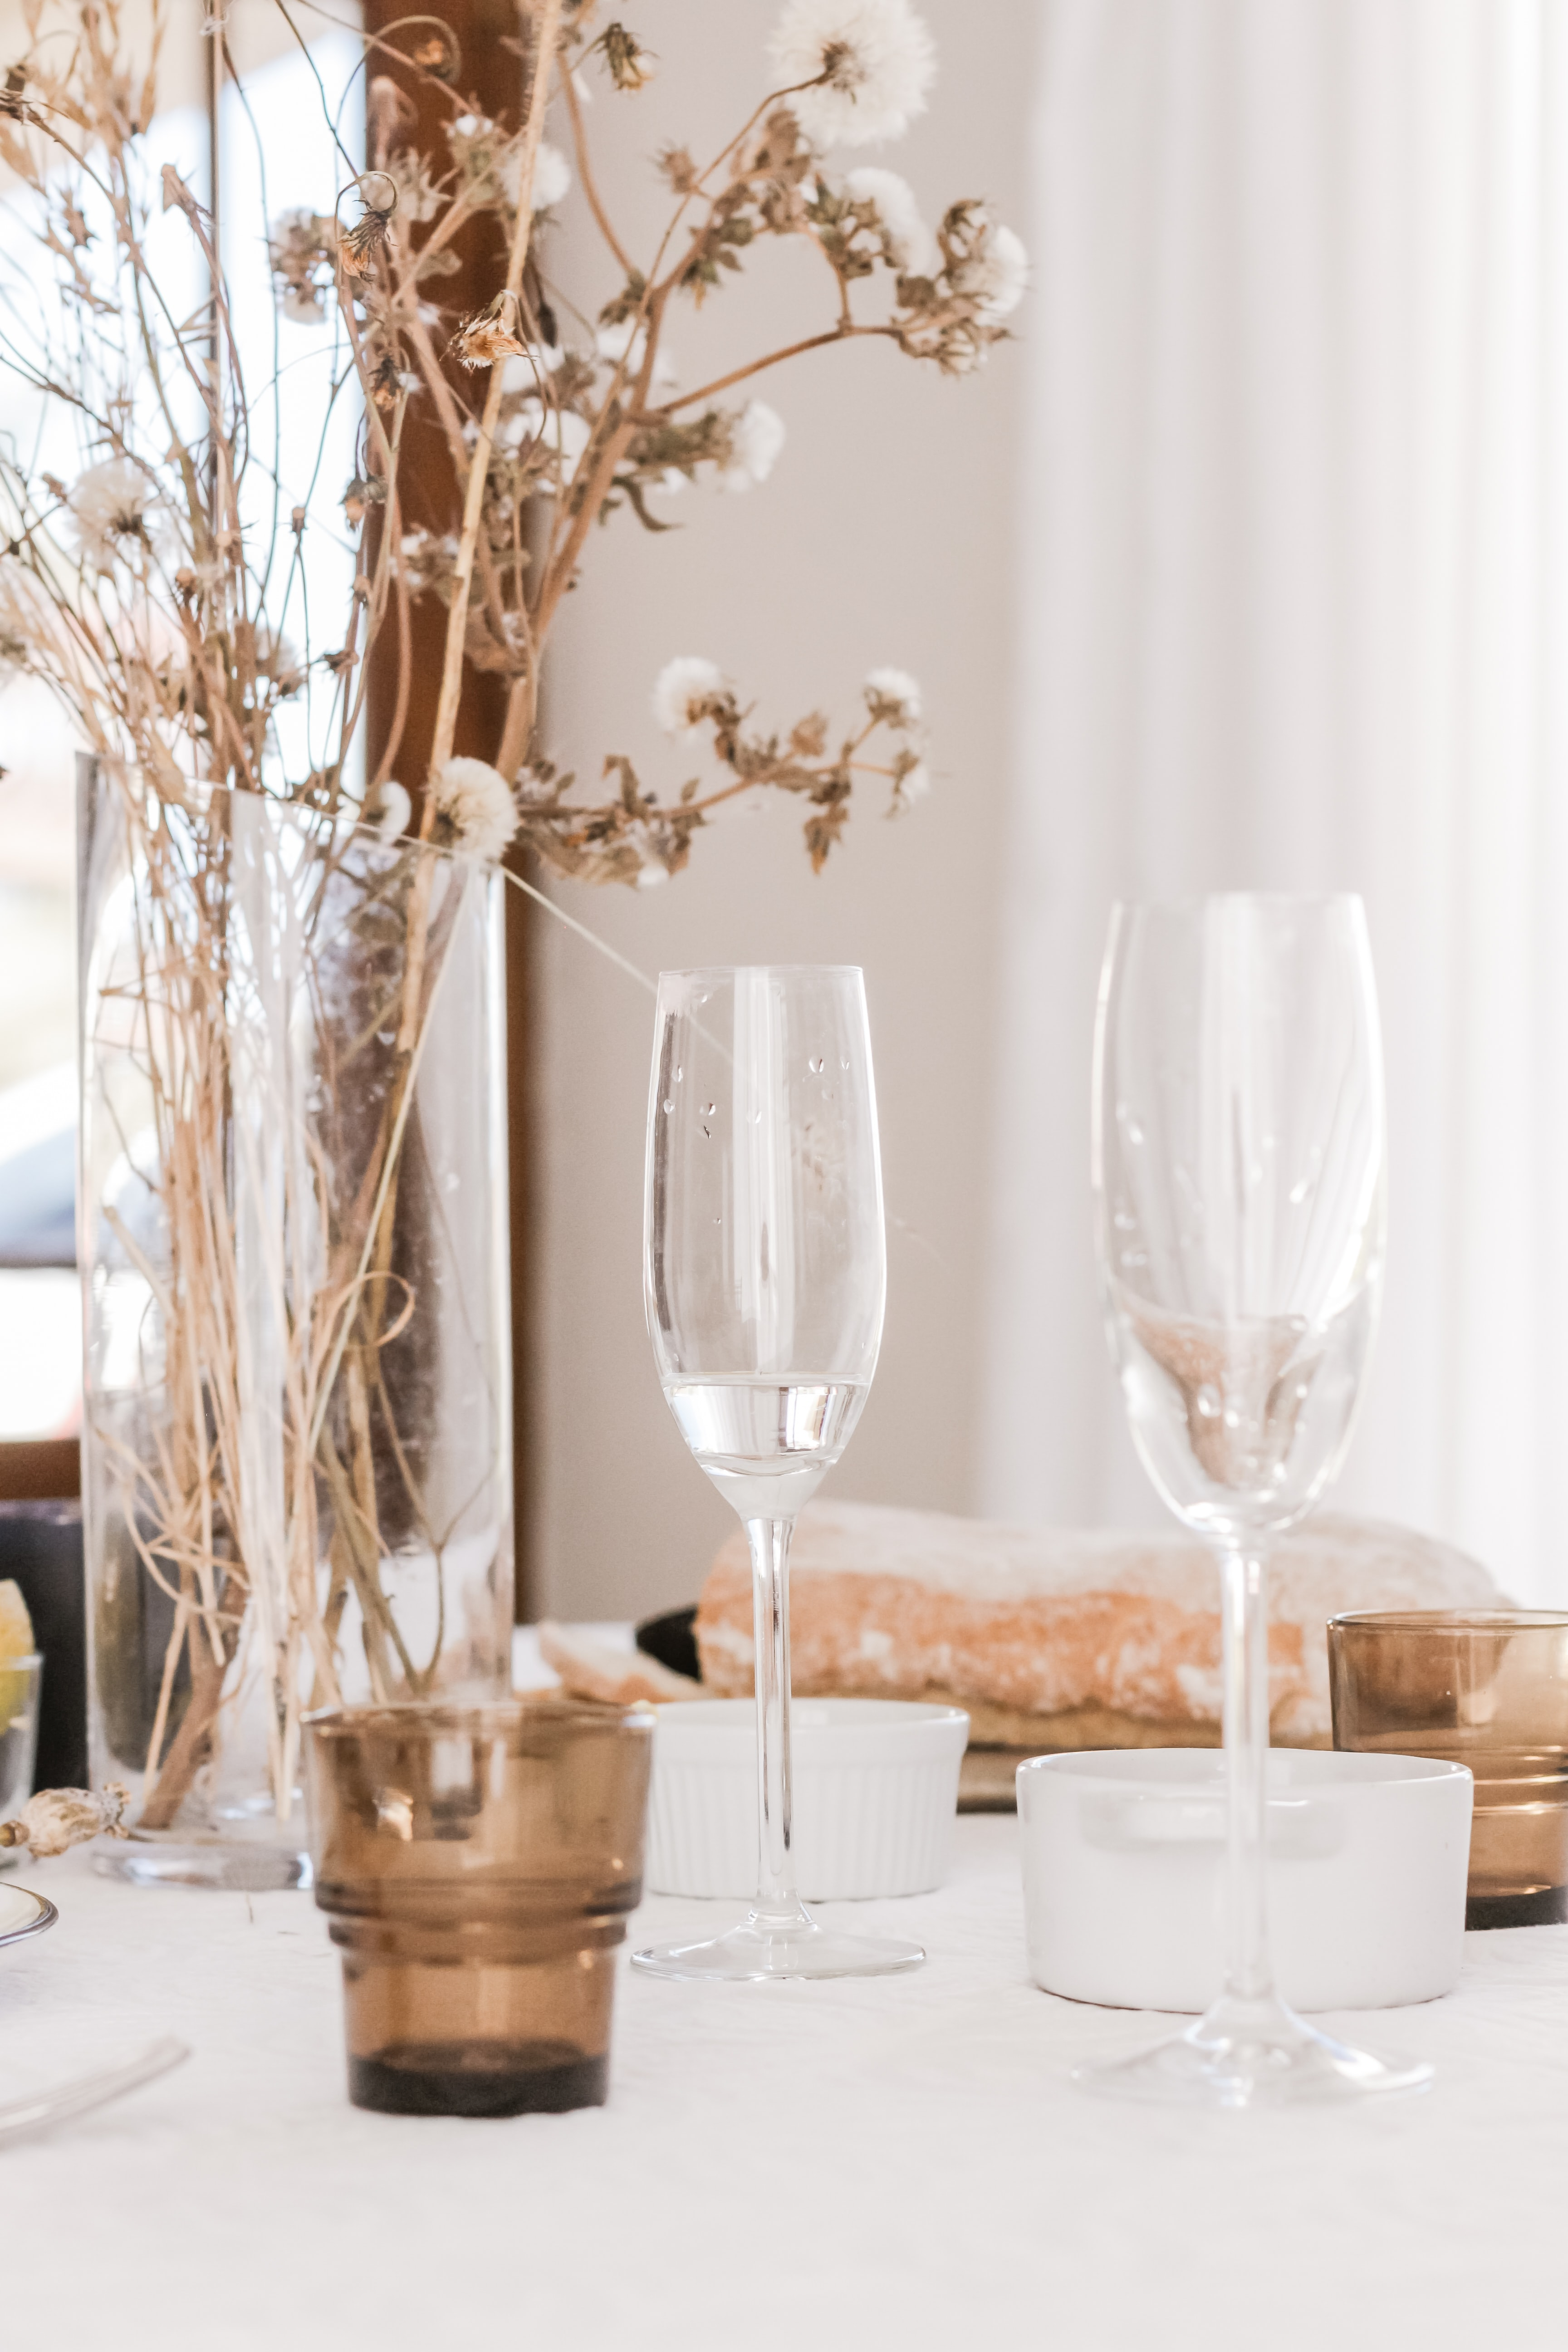 clear glass vase with white flower